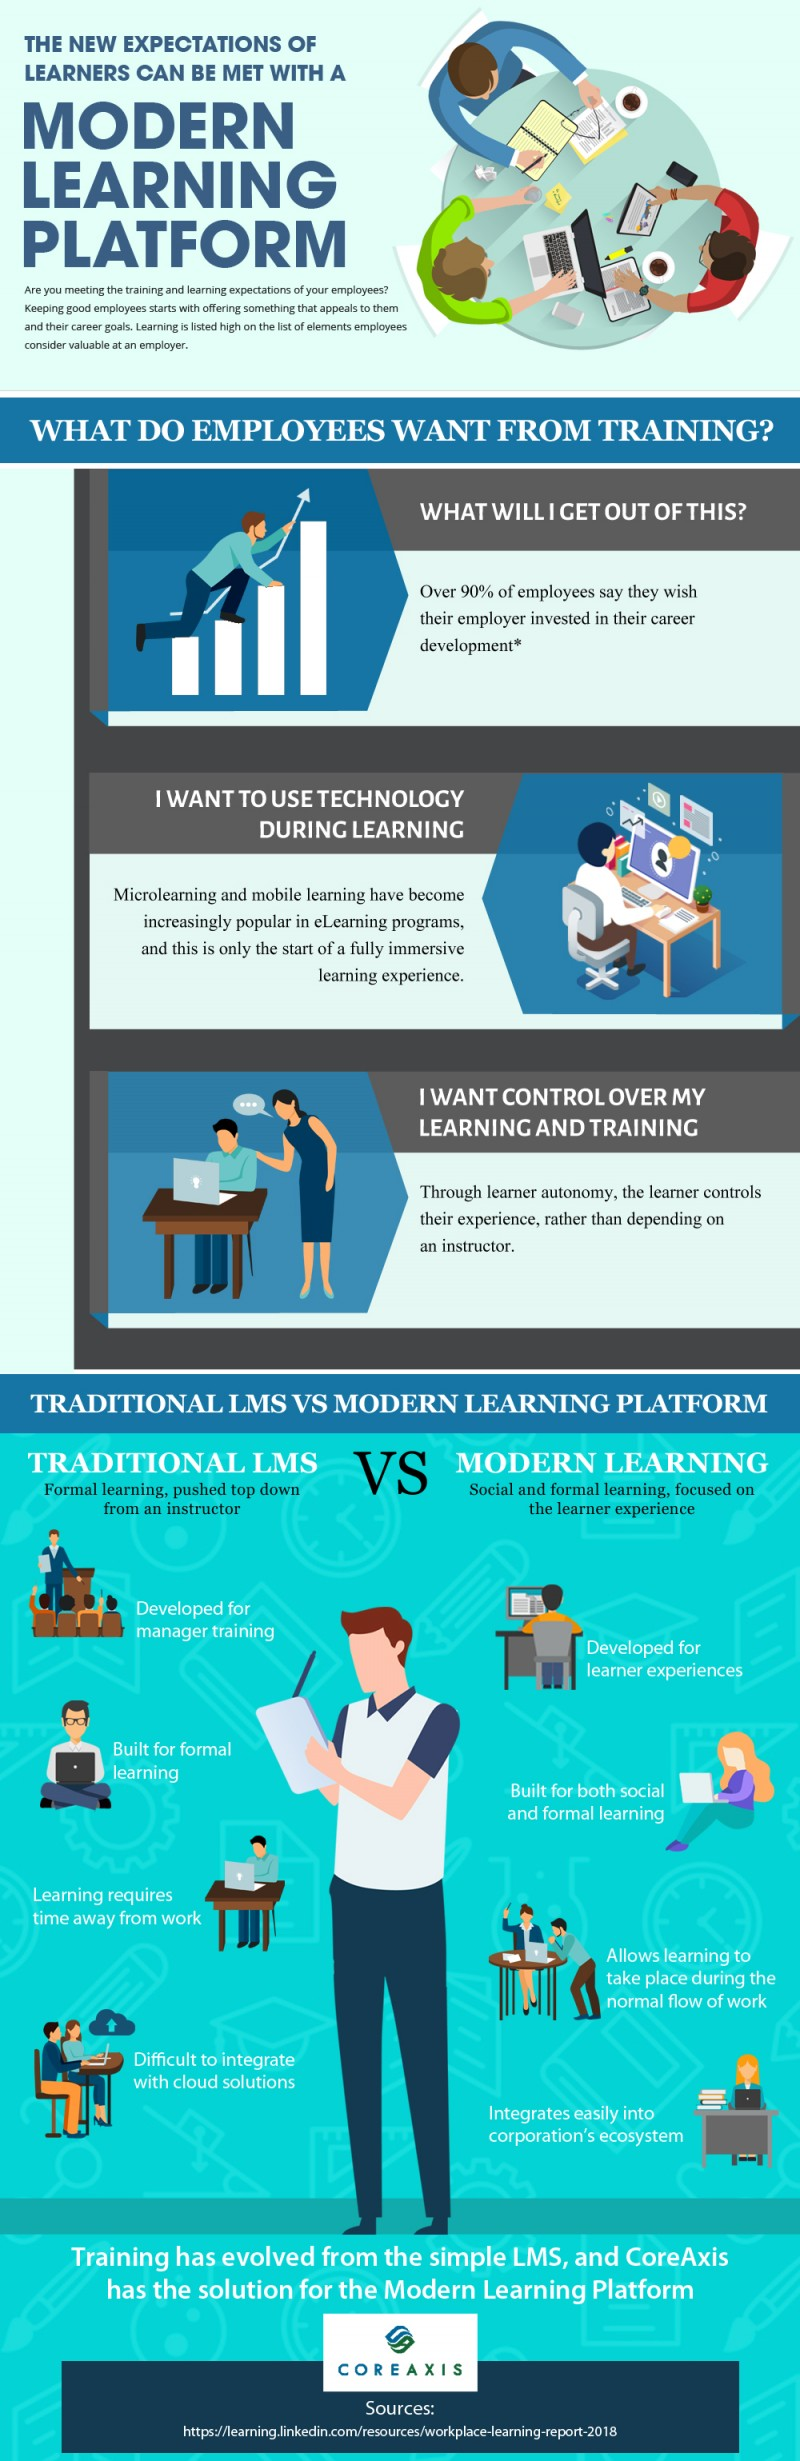 The New Expectations of Learners Can Be Met with a Modern Learning Platform